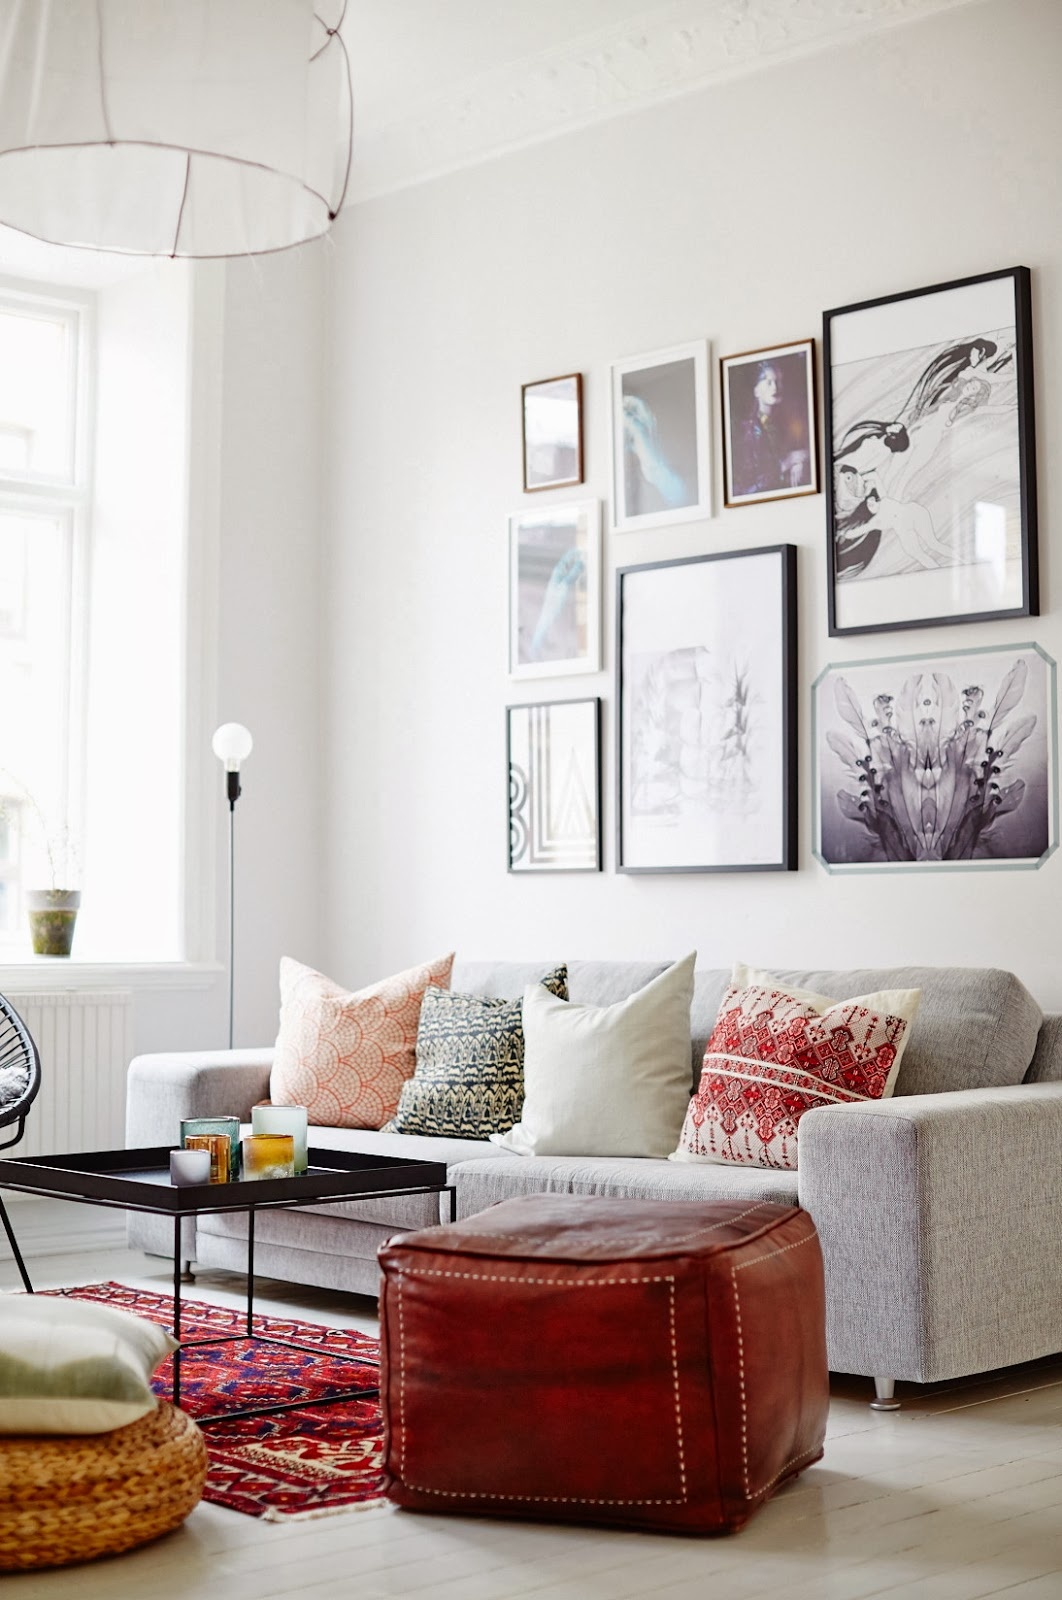 Boho style in the interior: inspiration ideas boho style in the interior Boho style in the interior: inspiration ideas boho